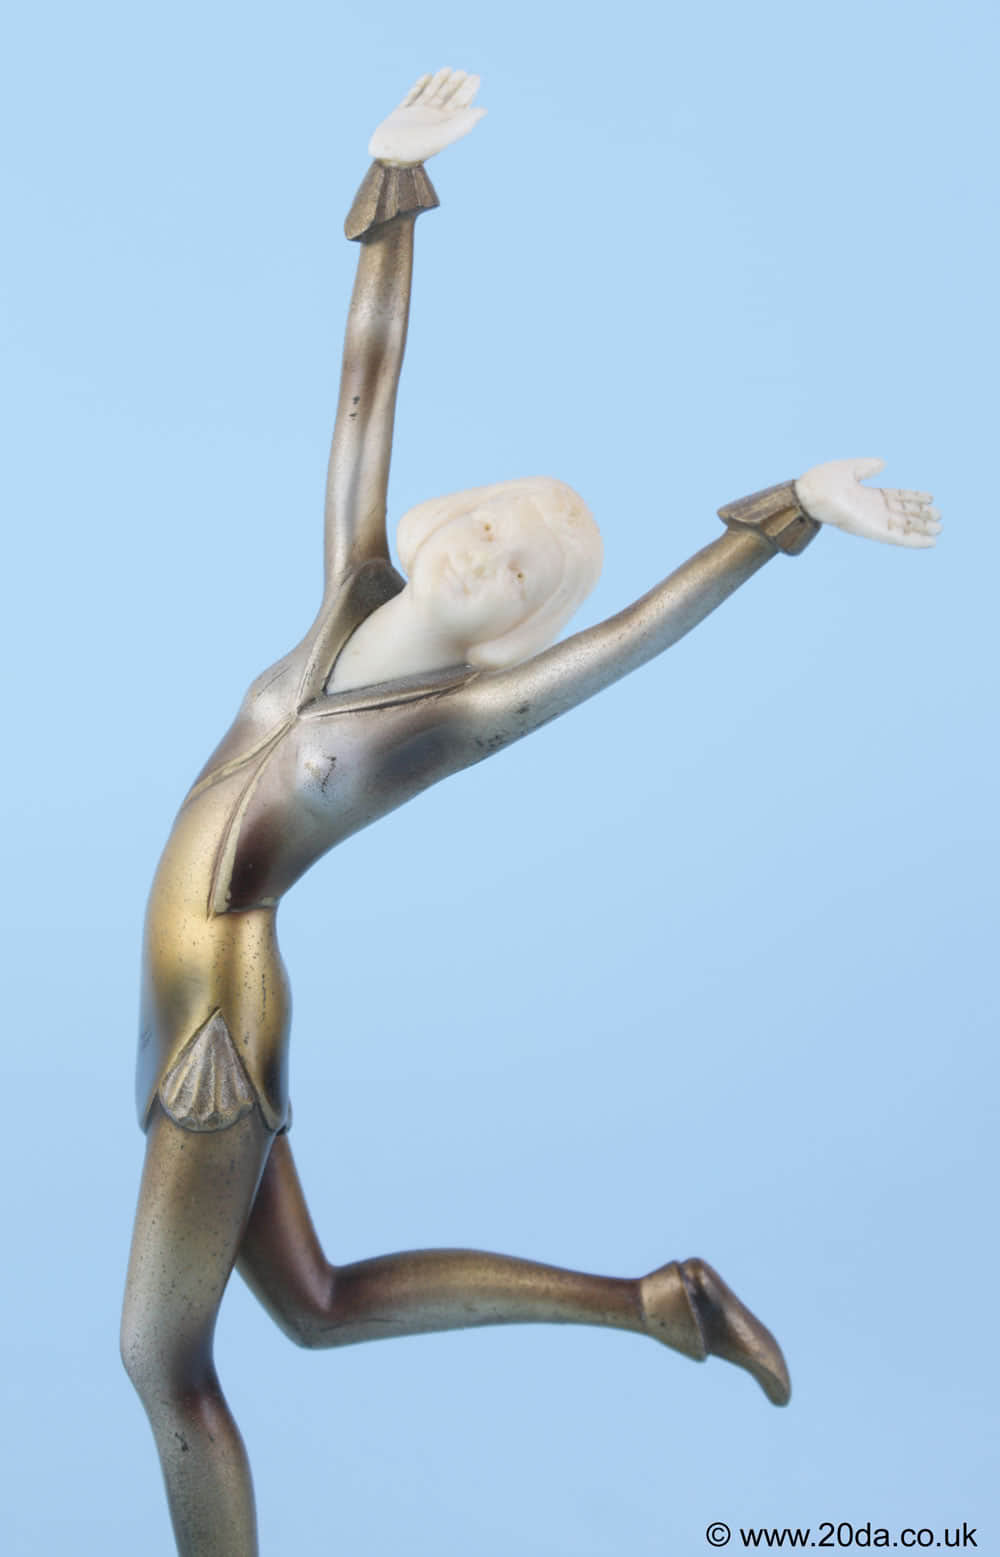 20th Century Decorative Arts |An exuberant Art Deco Austrian bronze and ivory figure by Stefan Dakon, circa 1930 depicting a stylishly attired young lady with carved ivory head and hands, and a silvered and enamelled cold-painted finish, mounted on a shaped onyx base